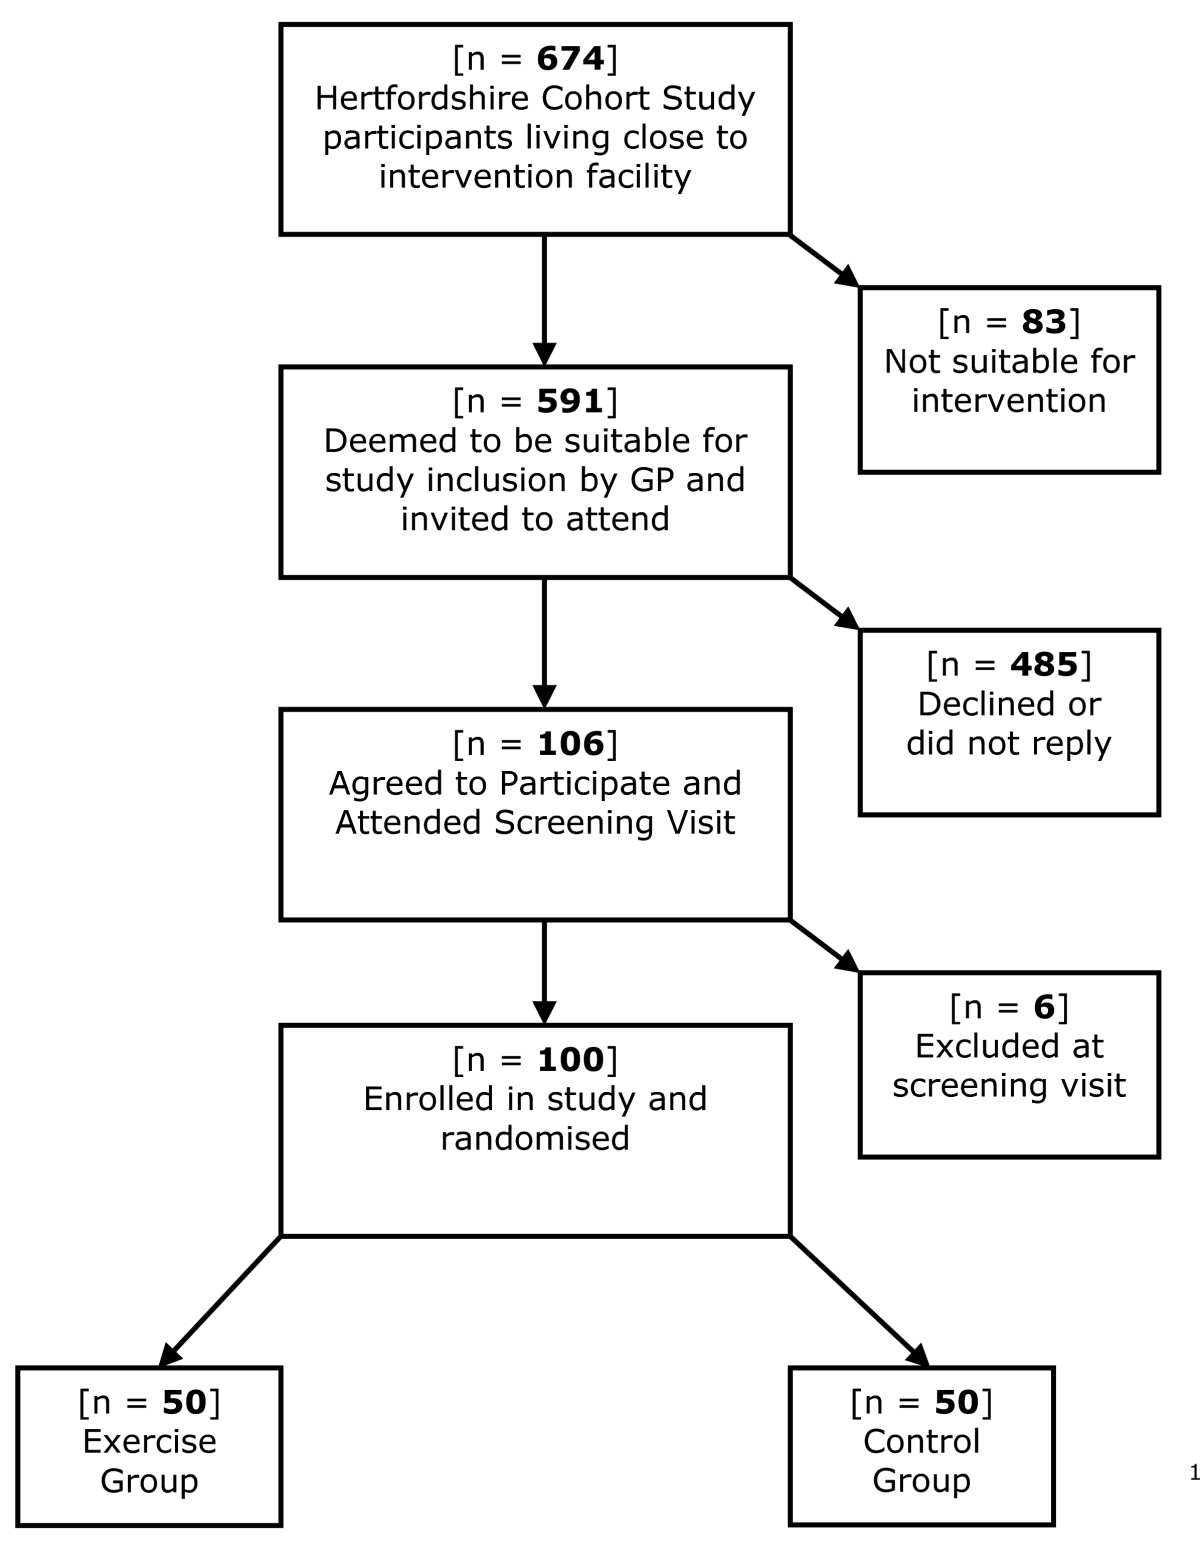 http://static-content.springer.com/image/art%3A10.1186%2F1472-6823-9-15/MediaObjects/12902_2009_Article_74_Fig1_HTML.jpg